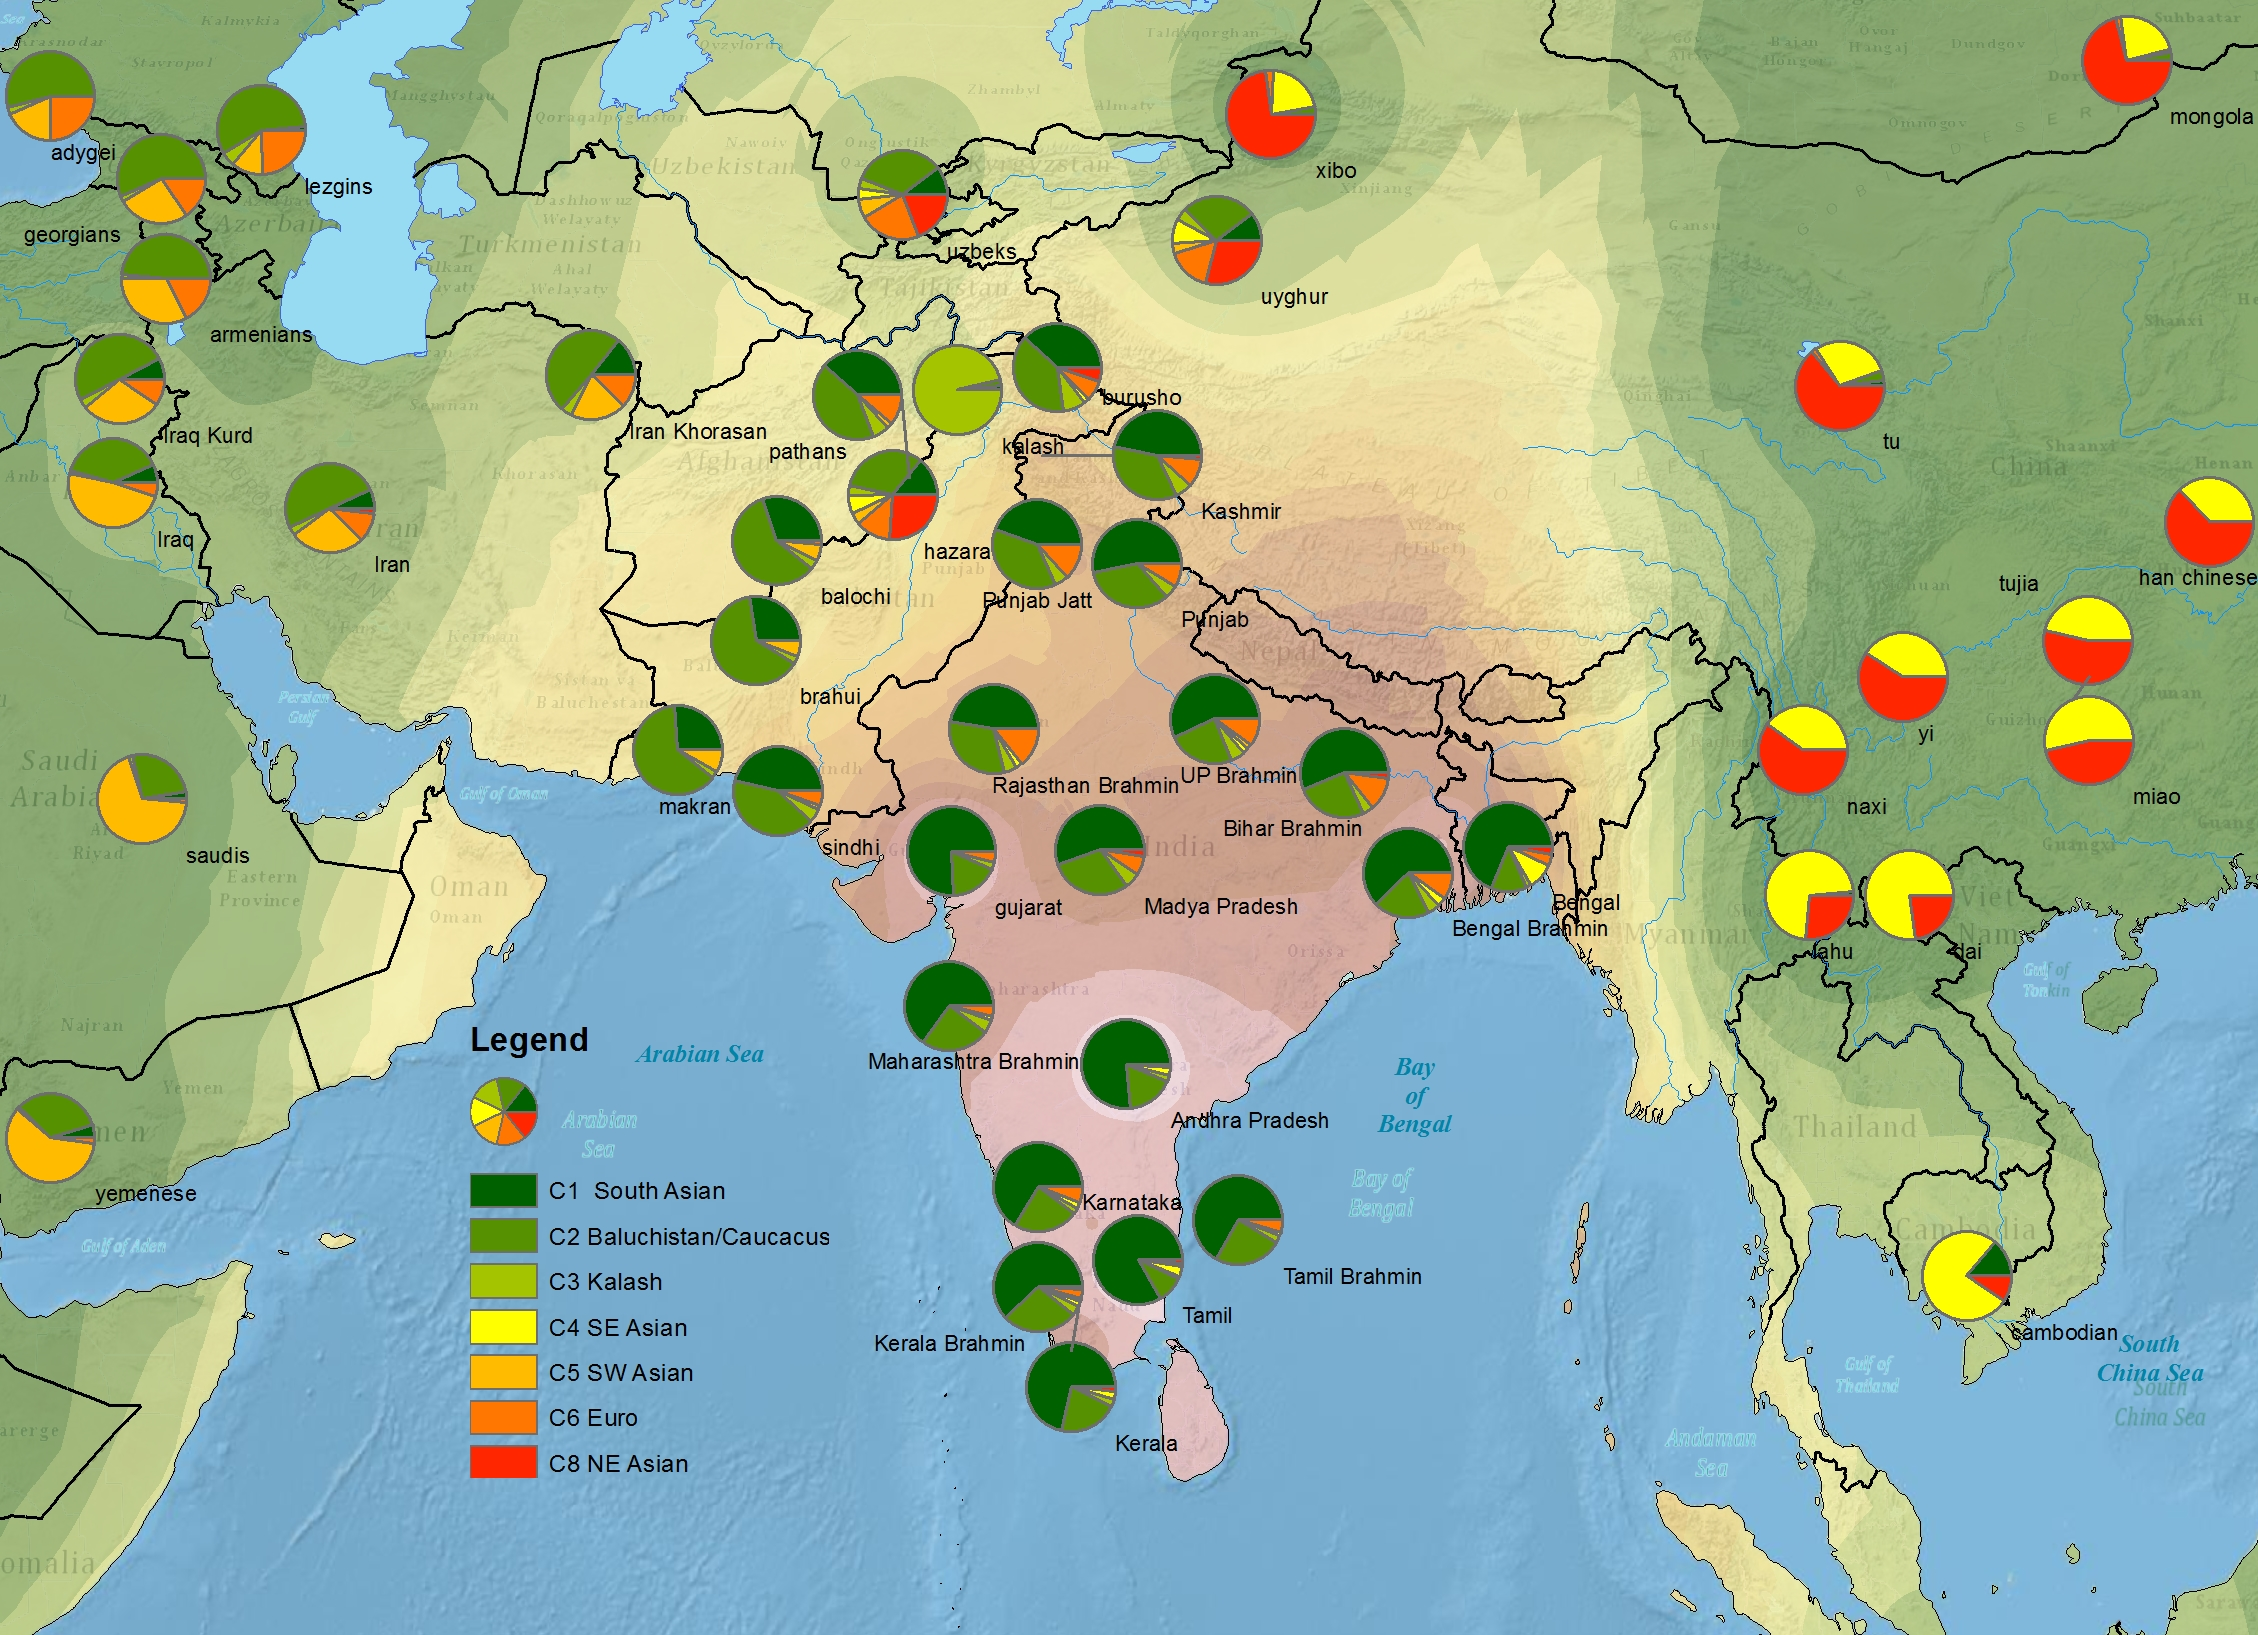 Harappa World Map.Harappa Maps Harappa Ancestry Project